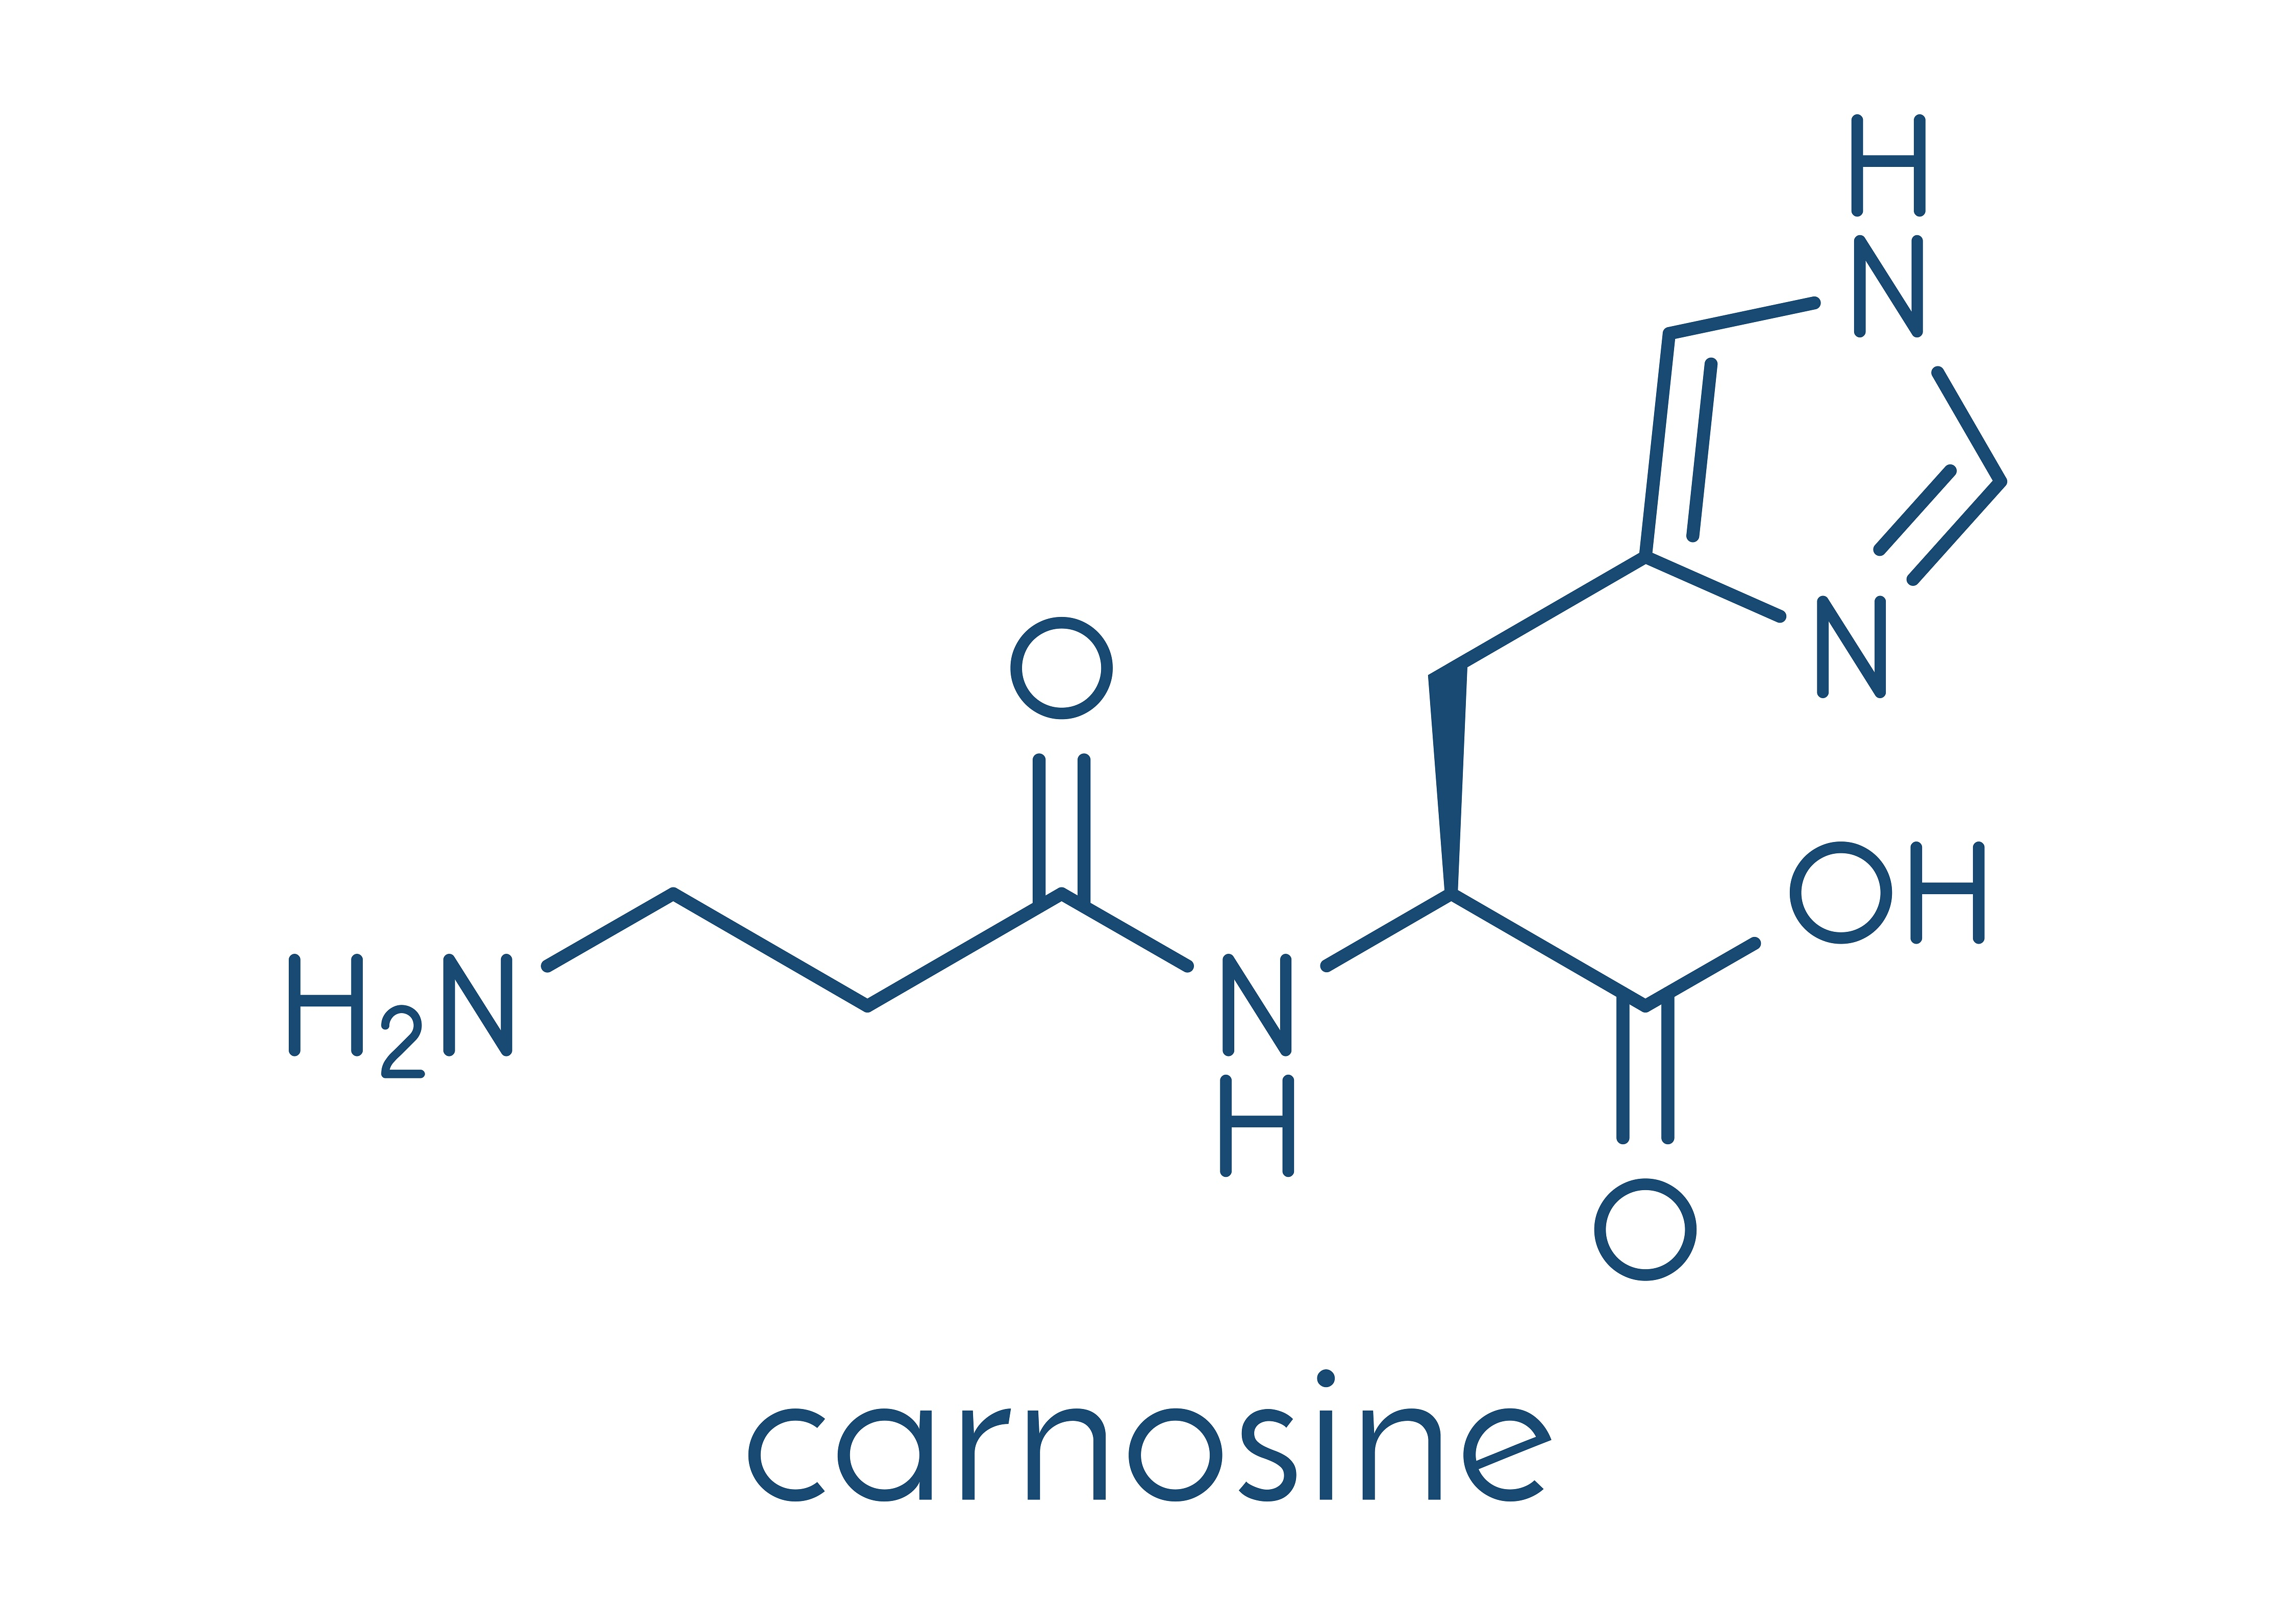 Carnosine is also a substance which supplementation would be helpful in improving endurance